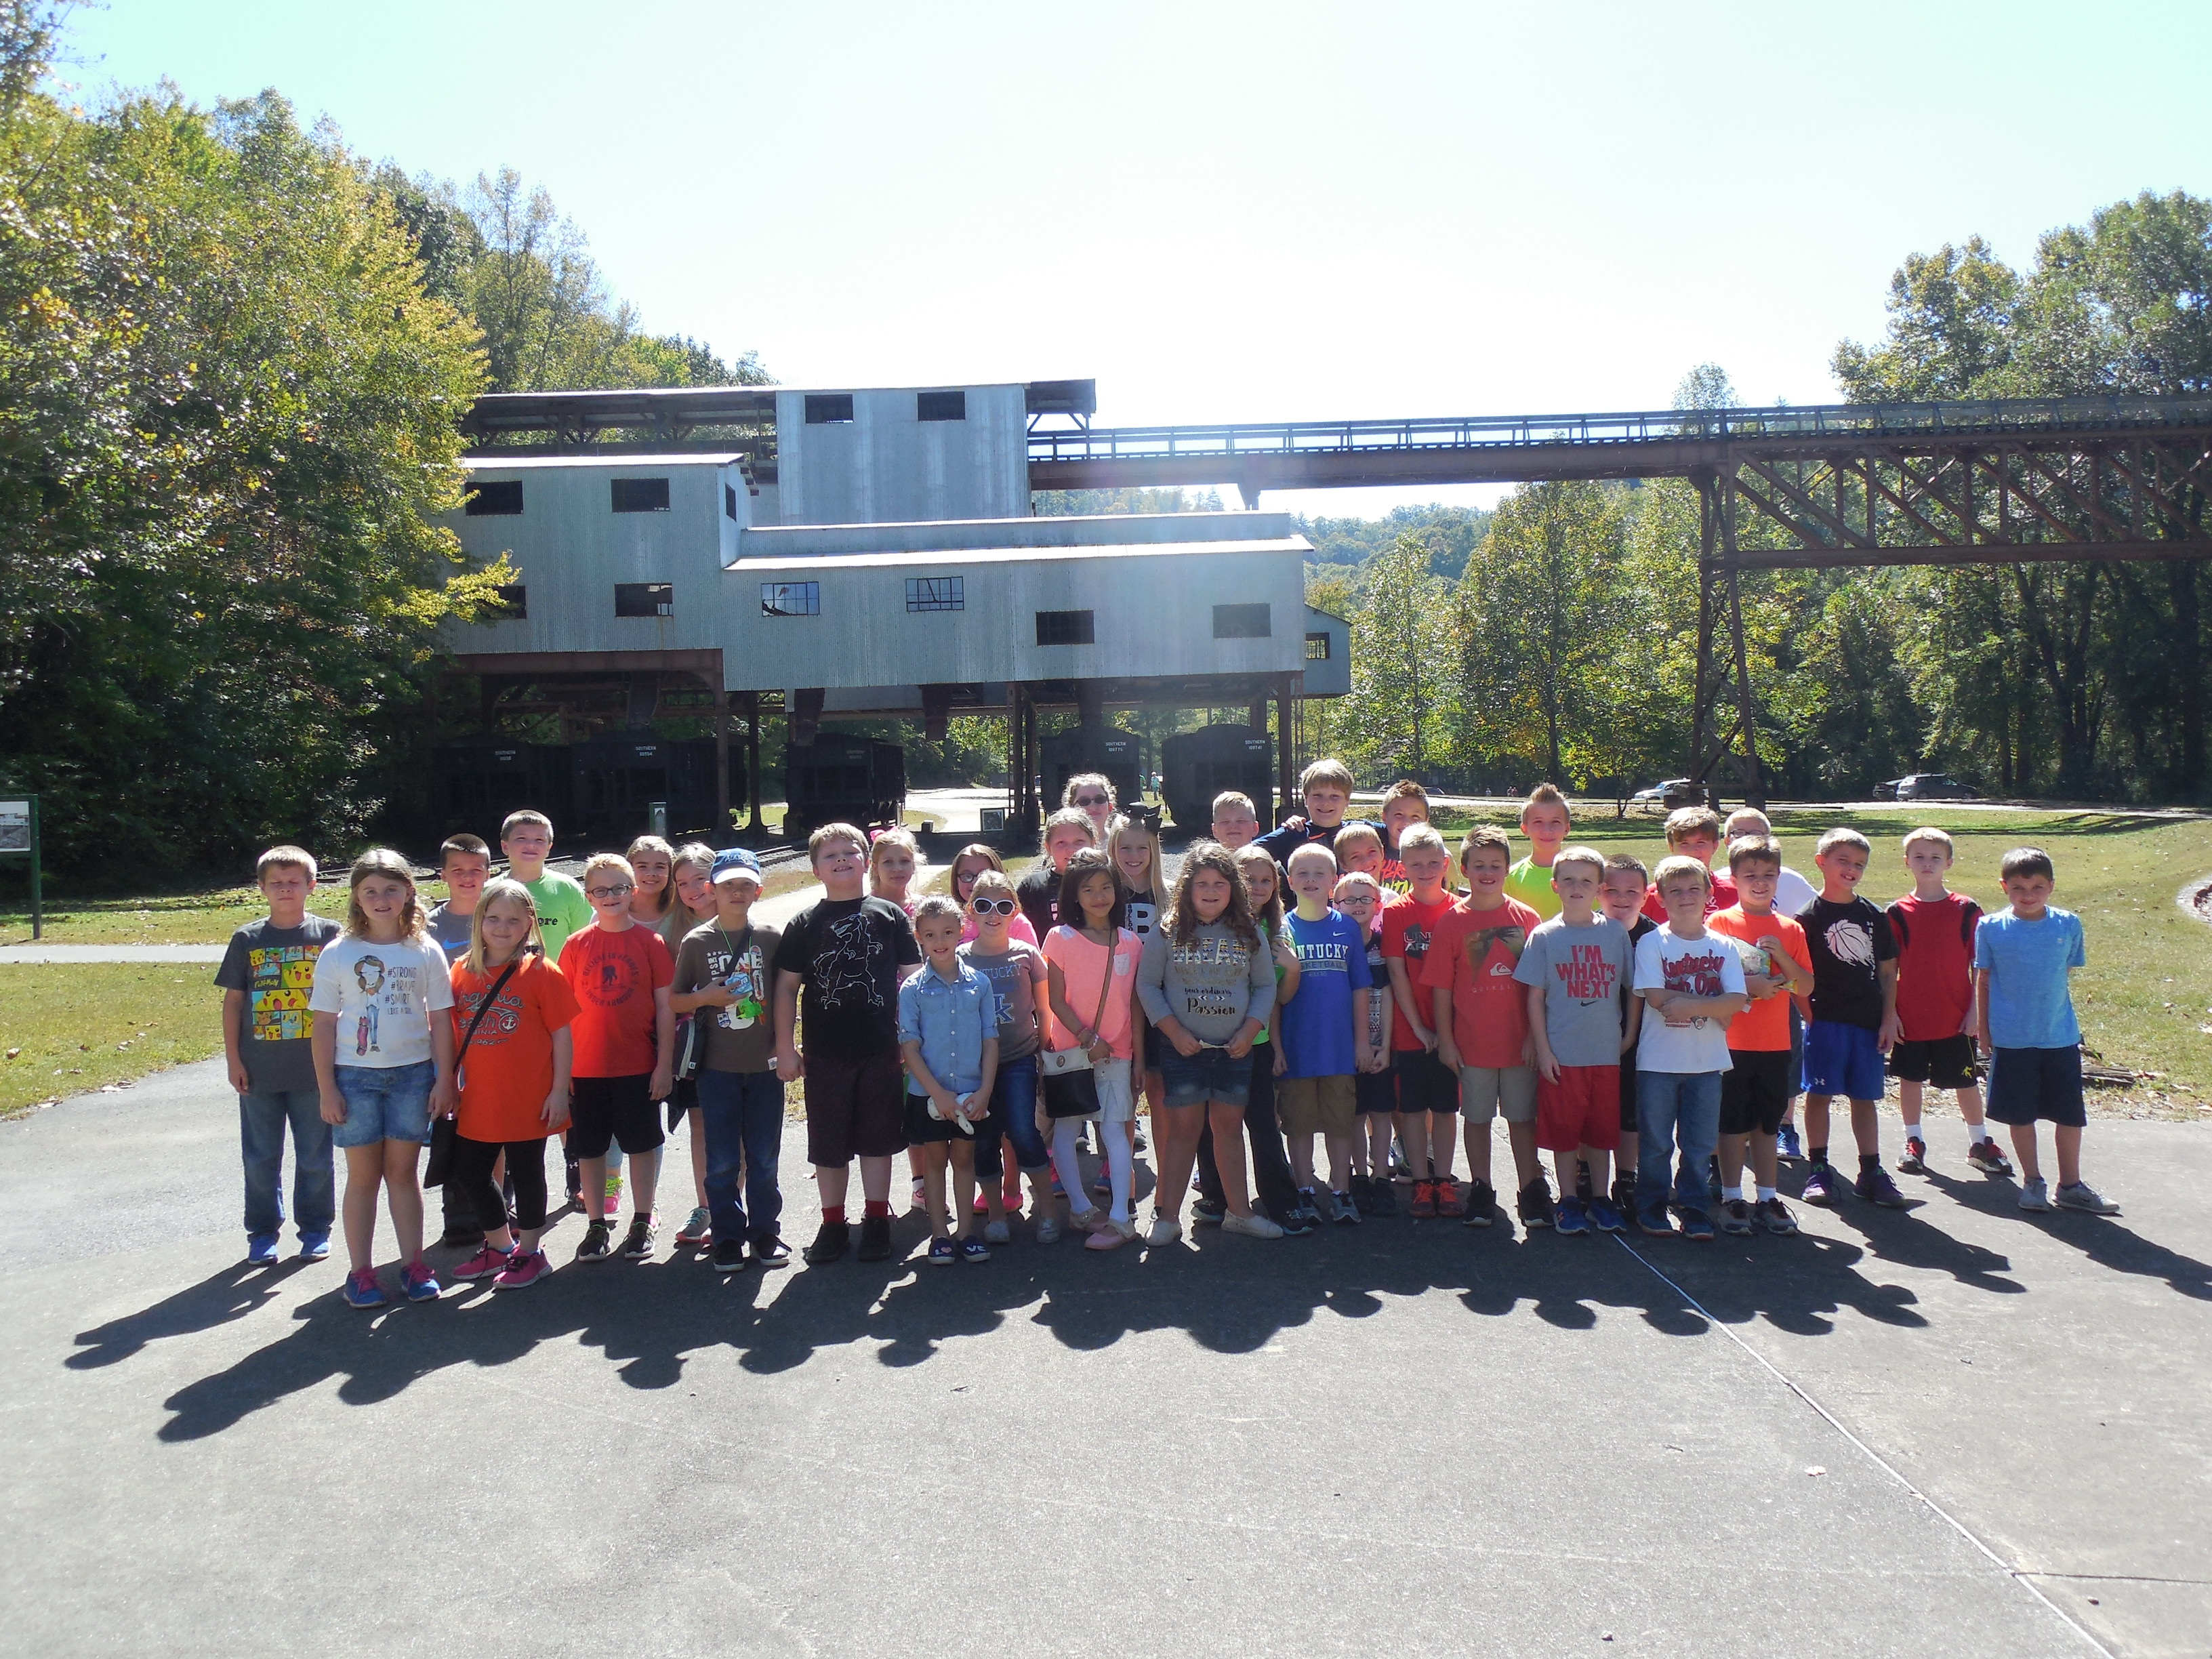 On Friday, October 7th, AES students traveled to Stearns, Kentucky to take a ride on the Big South Fork Scenic Railway.